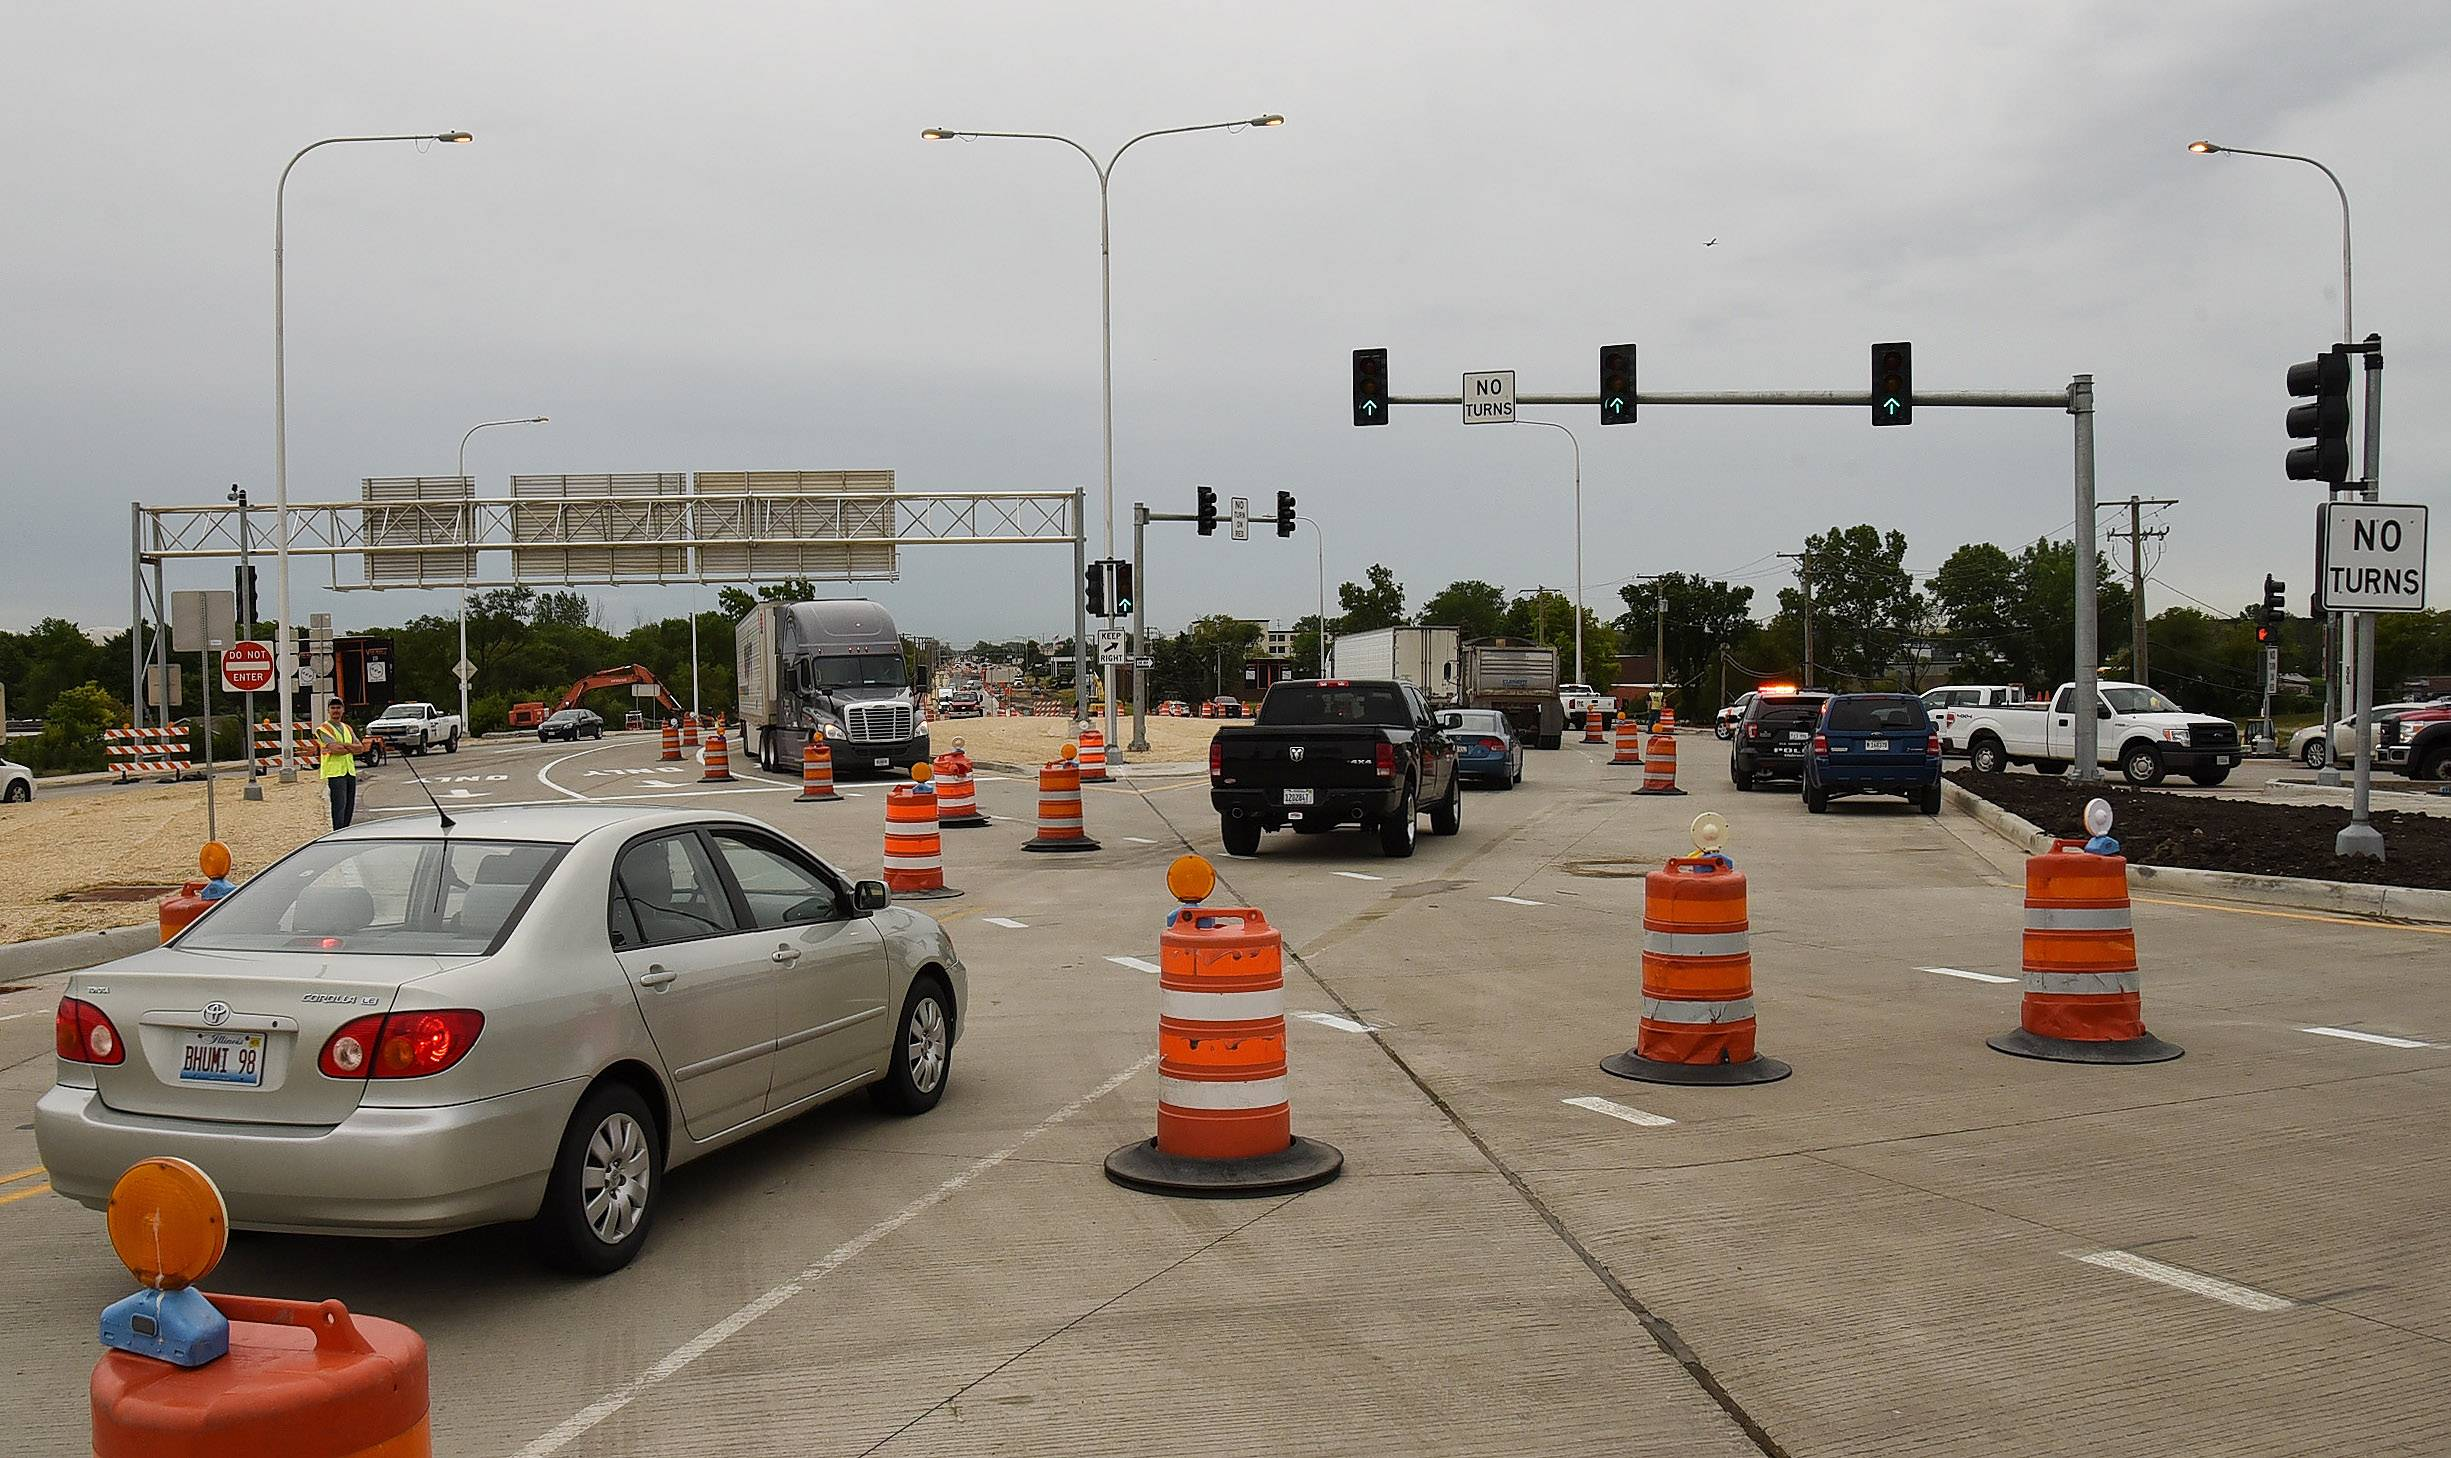 Diverging diamond interchange opens at Elmhurst Road and I-90